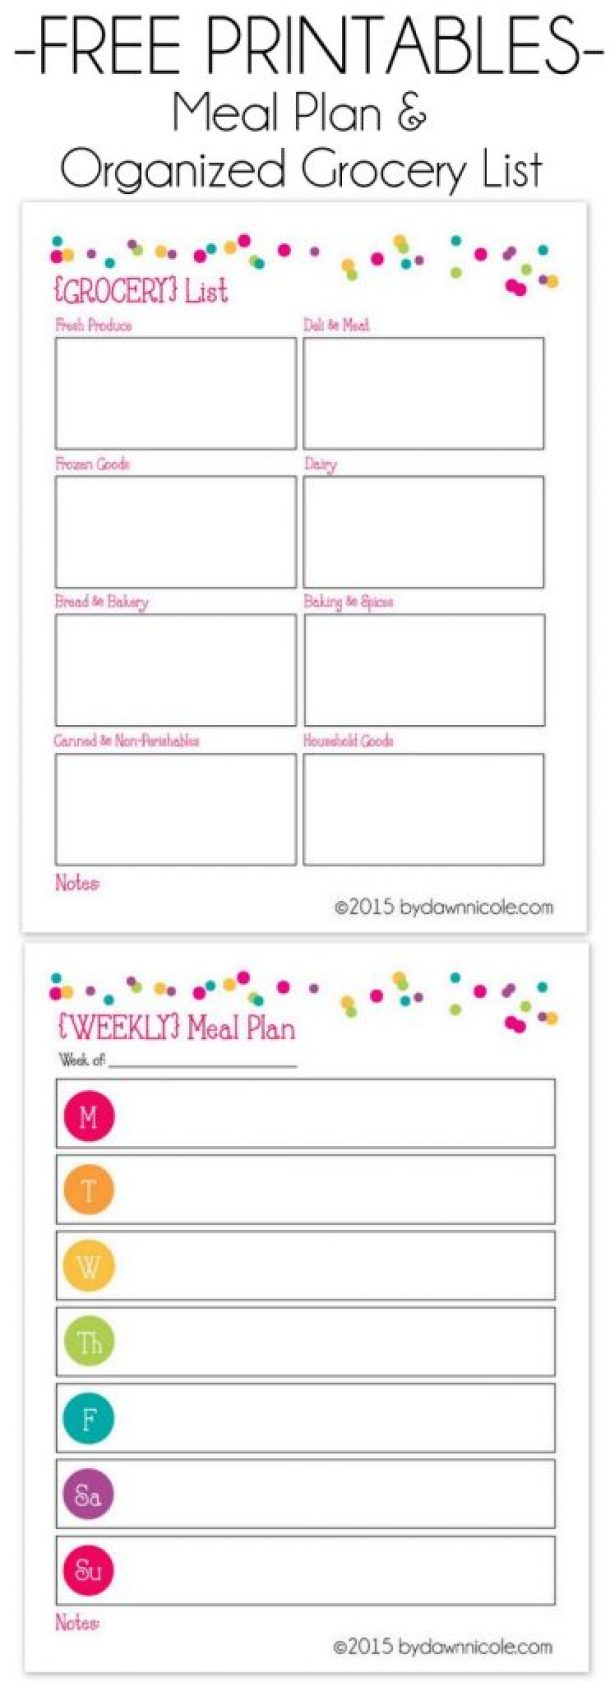 Organizational Printables - FREE Printable Meal Plan and Grocery Lists via Dawn Nicole Designs